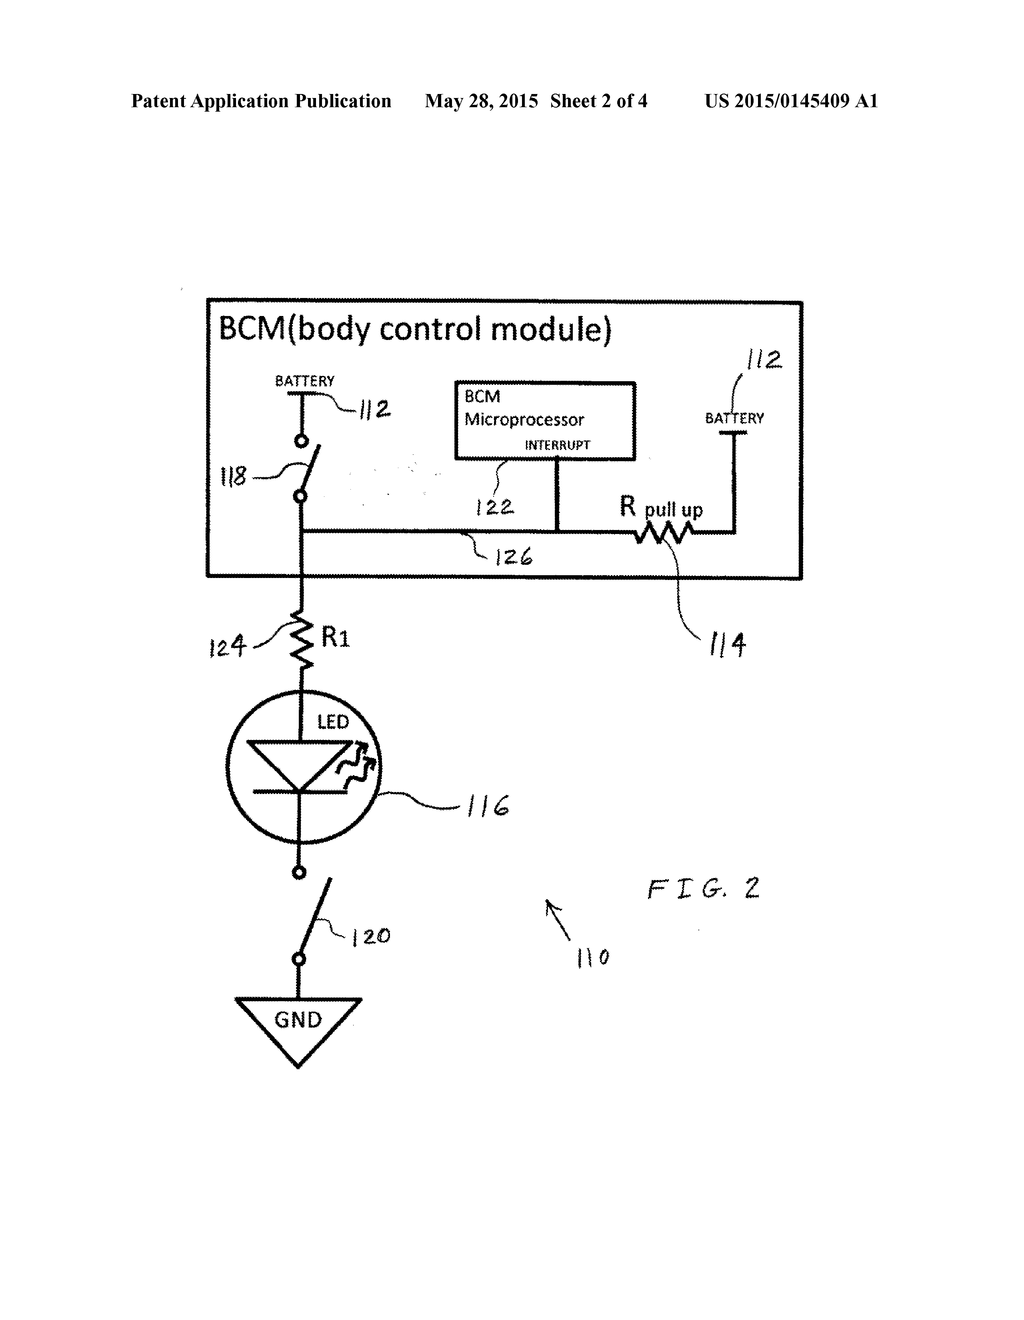 hight resolution of automotive led bleed resistor circuit and body control module interrupt wakeup circuit diagram schematic and image 03